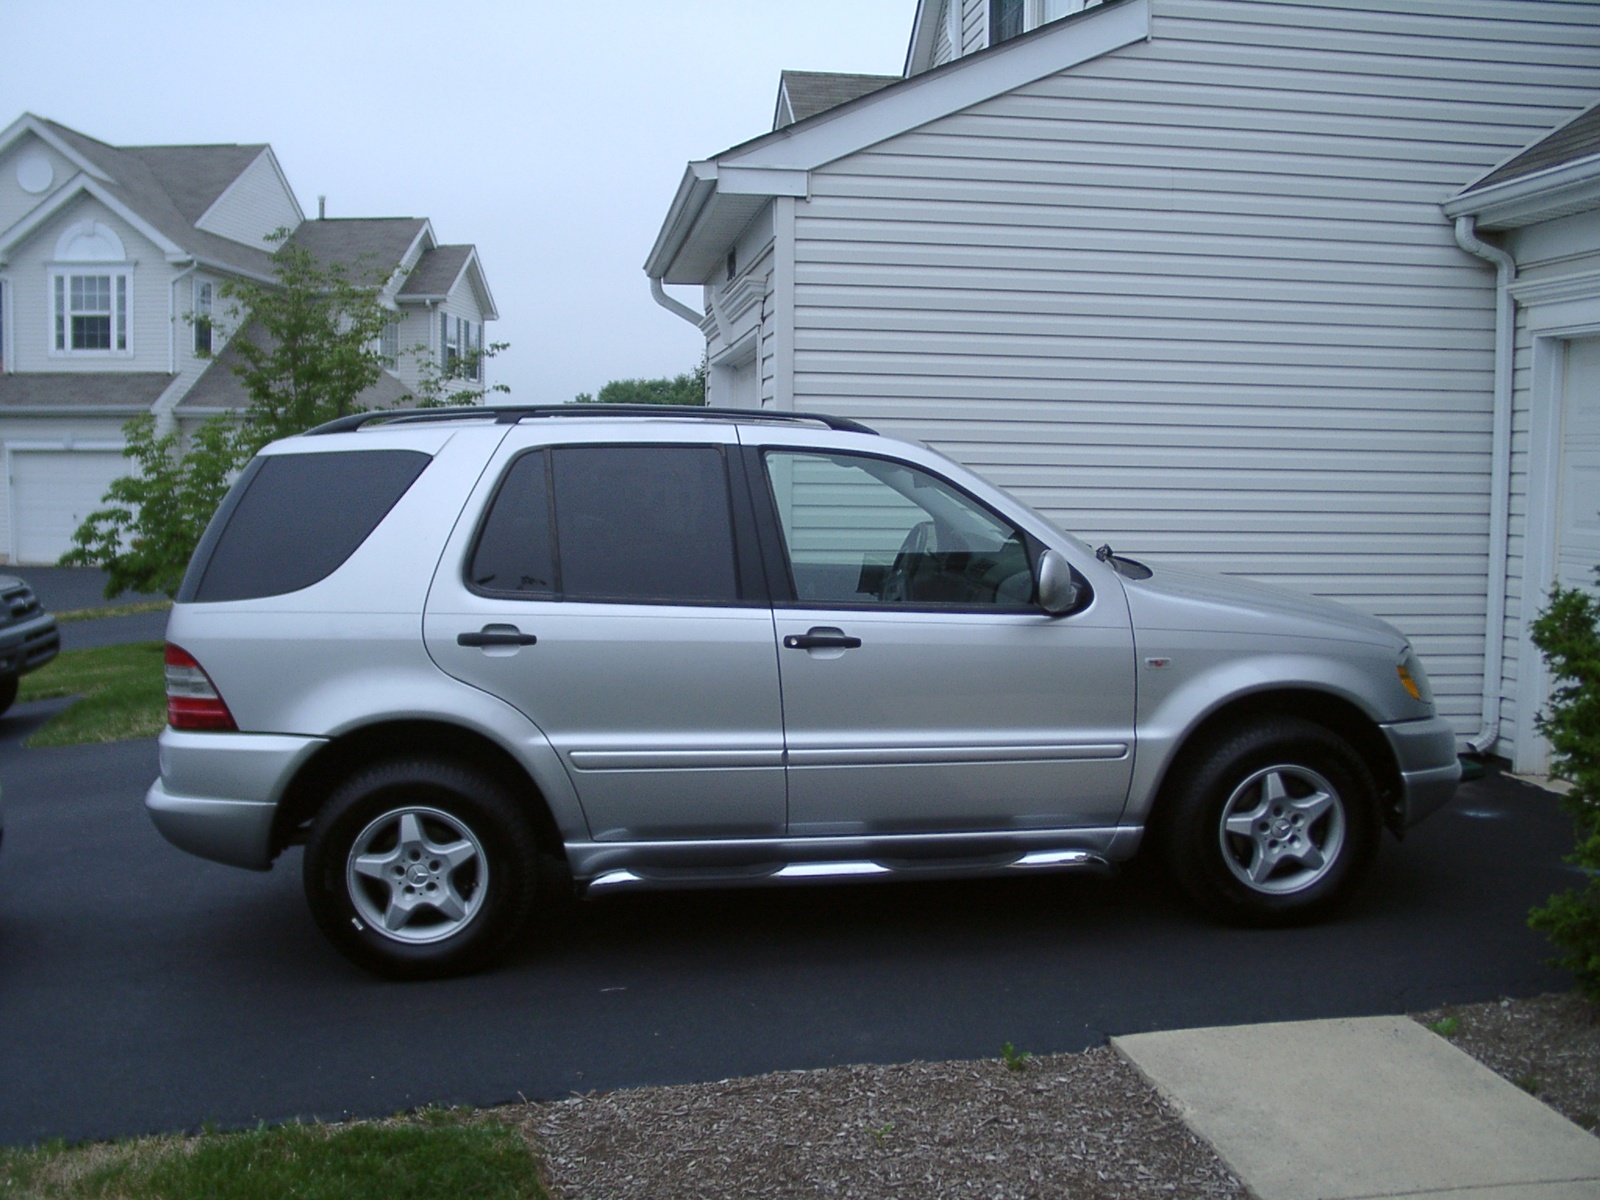 Picture of 2001 mercedes benz m class ml320 exterior for Mercedes benz m class mercedes suv